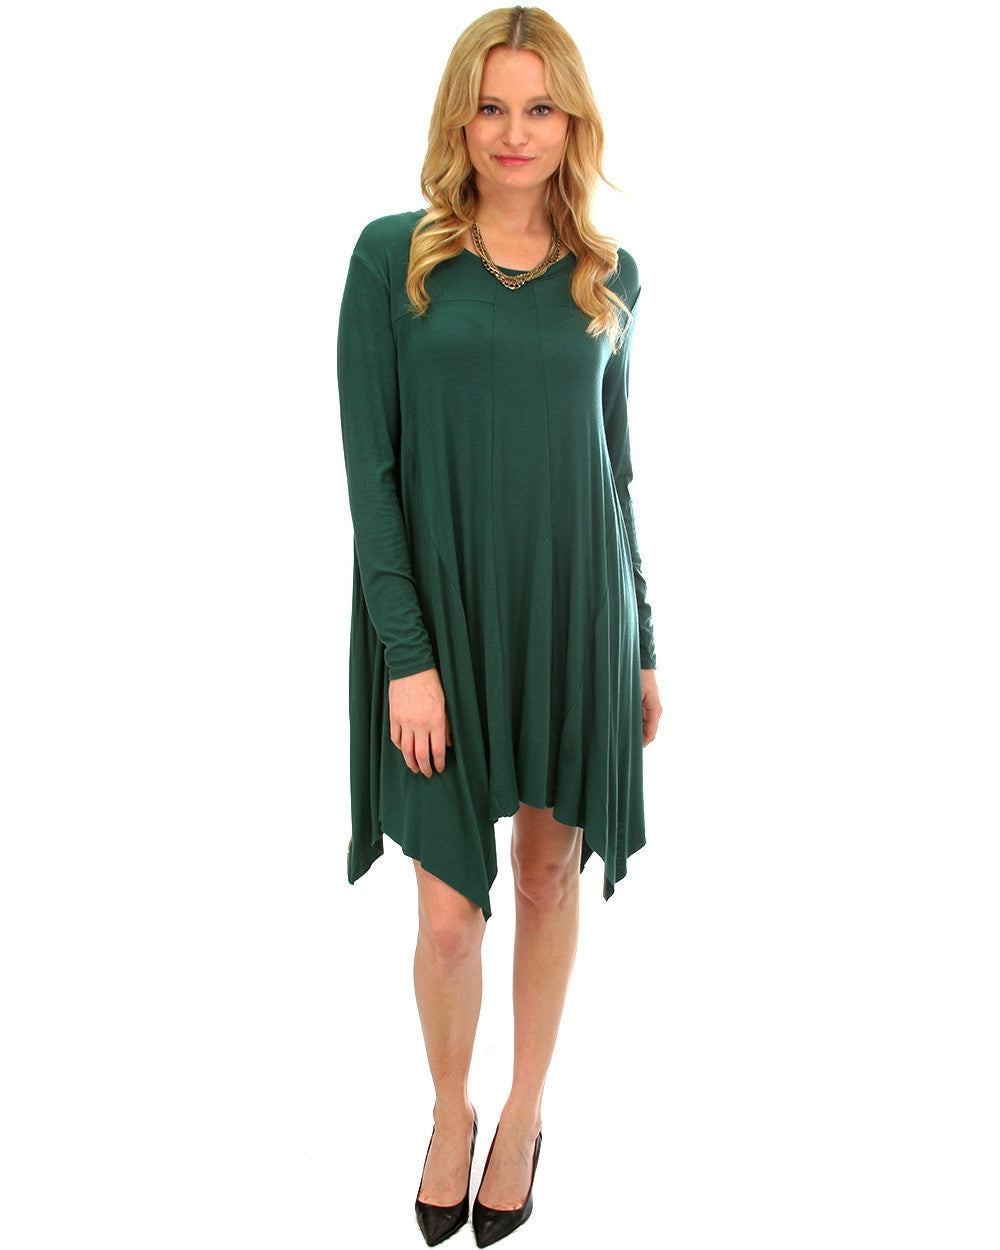 Long Sleeve Oversized T-Shirt Dress In Green